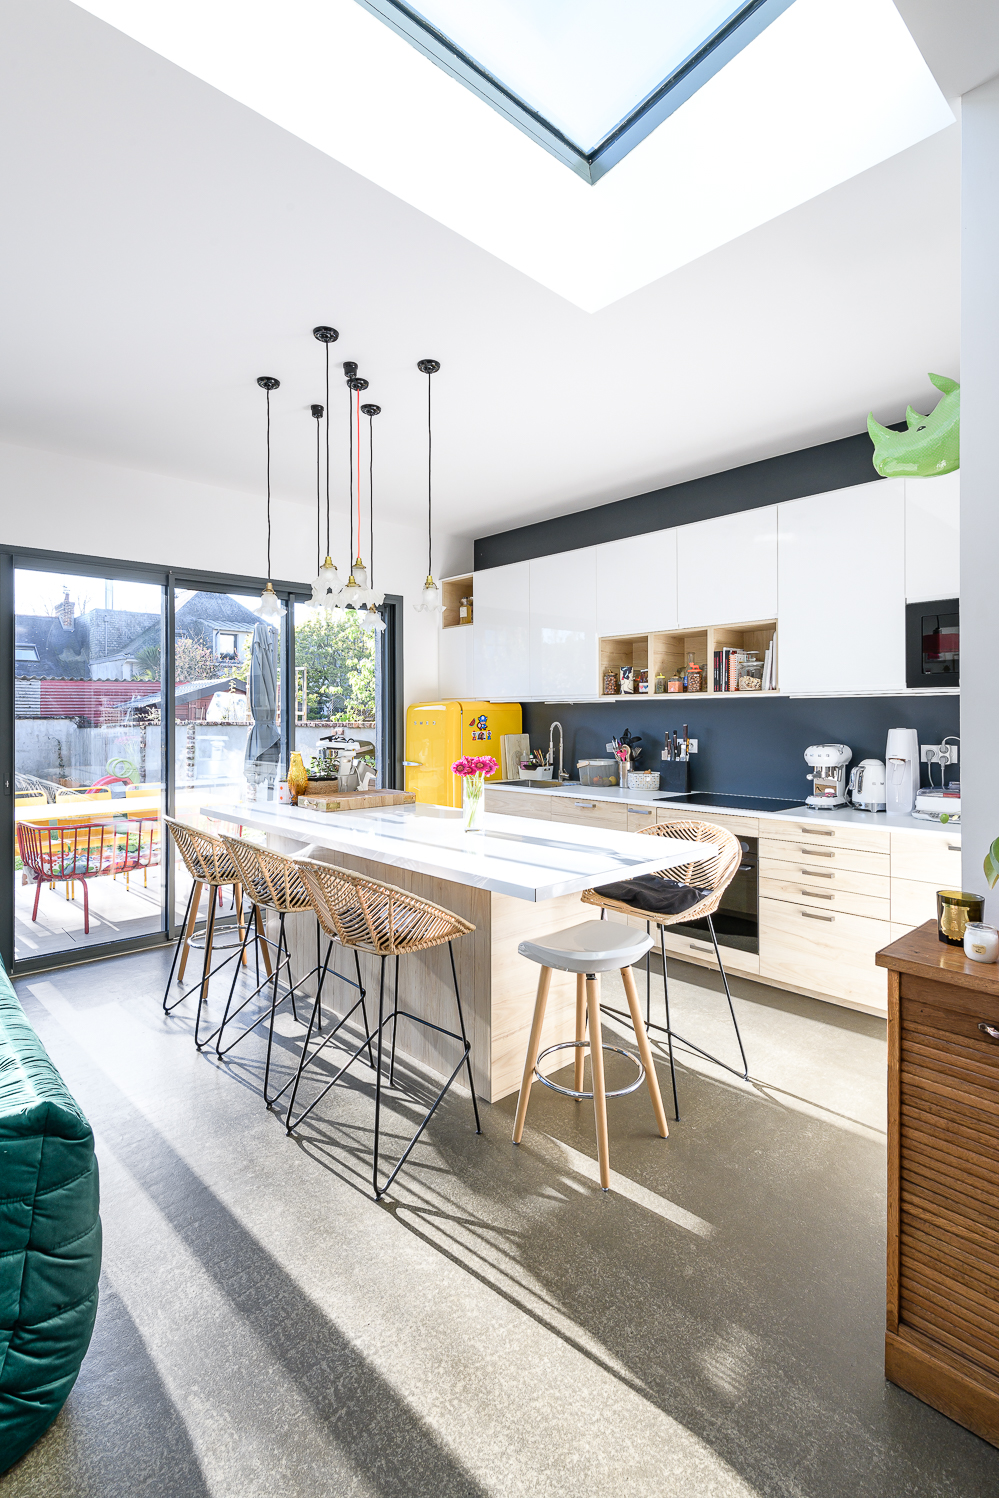 photographe d'architecture @INTERVALphoto : Briand Renault Architectes, rénovation, extension maison individuelle, Rennes (35)